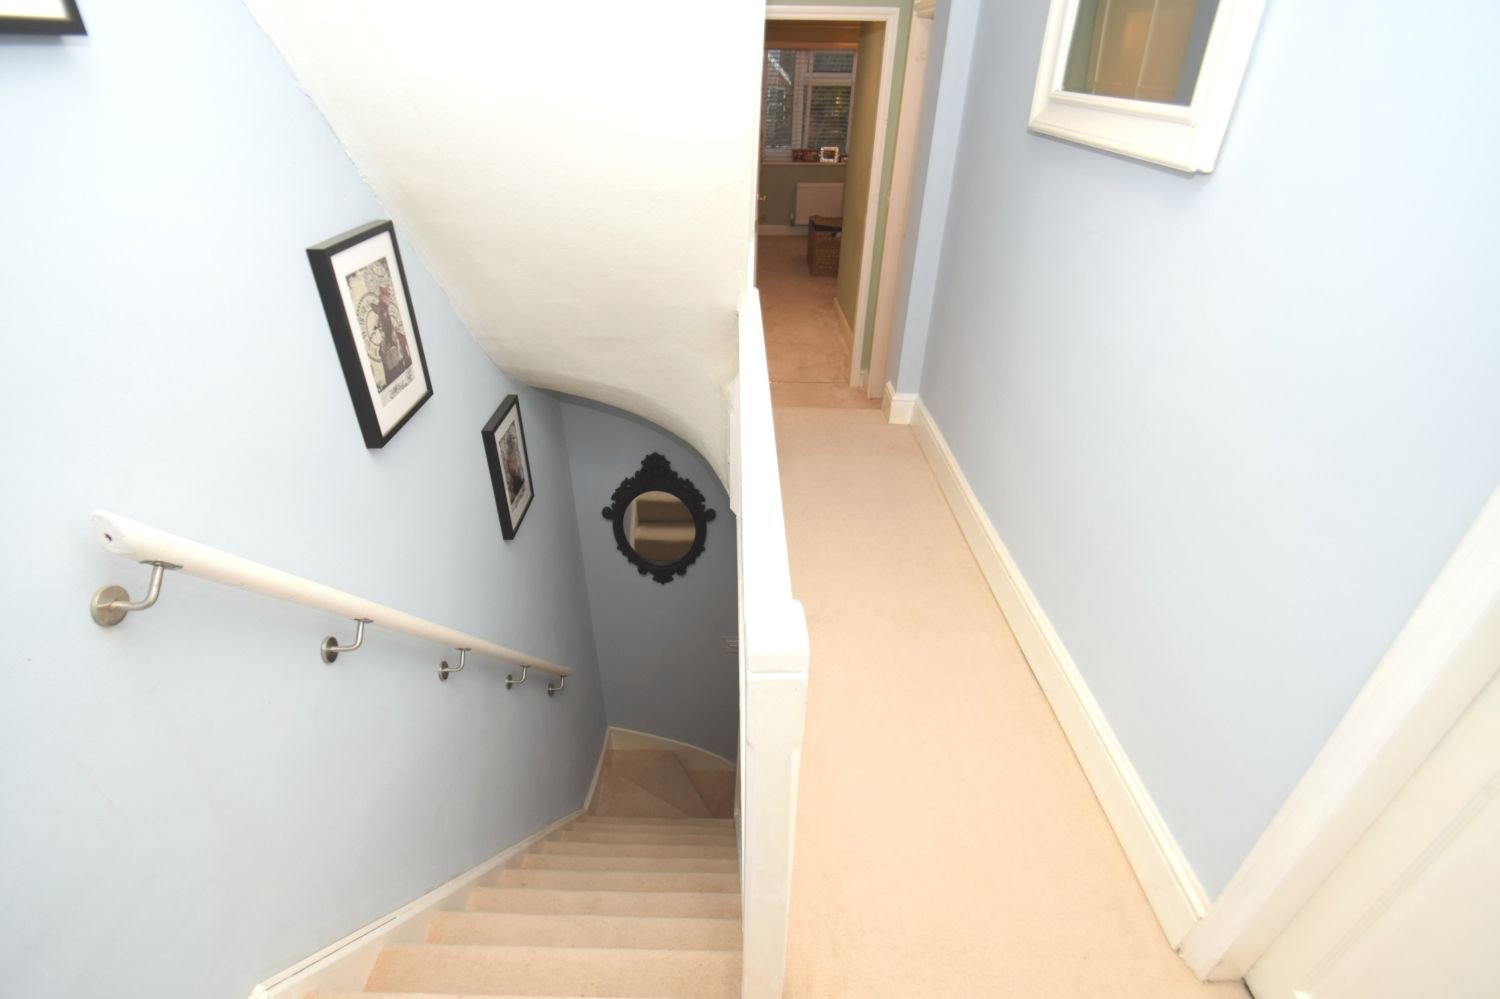 4 bed semi-detached for sale in Upland Grove, Bromsgrove, B61  - Property Image 16